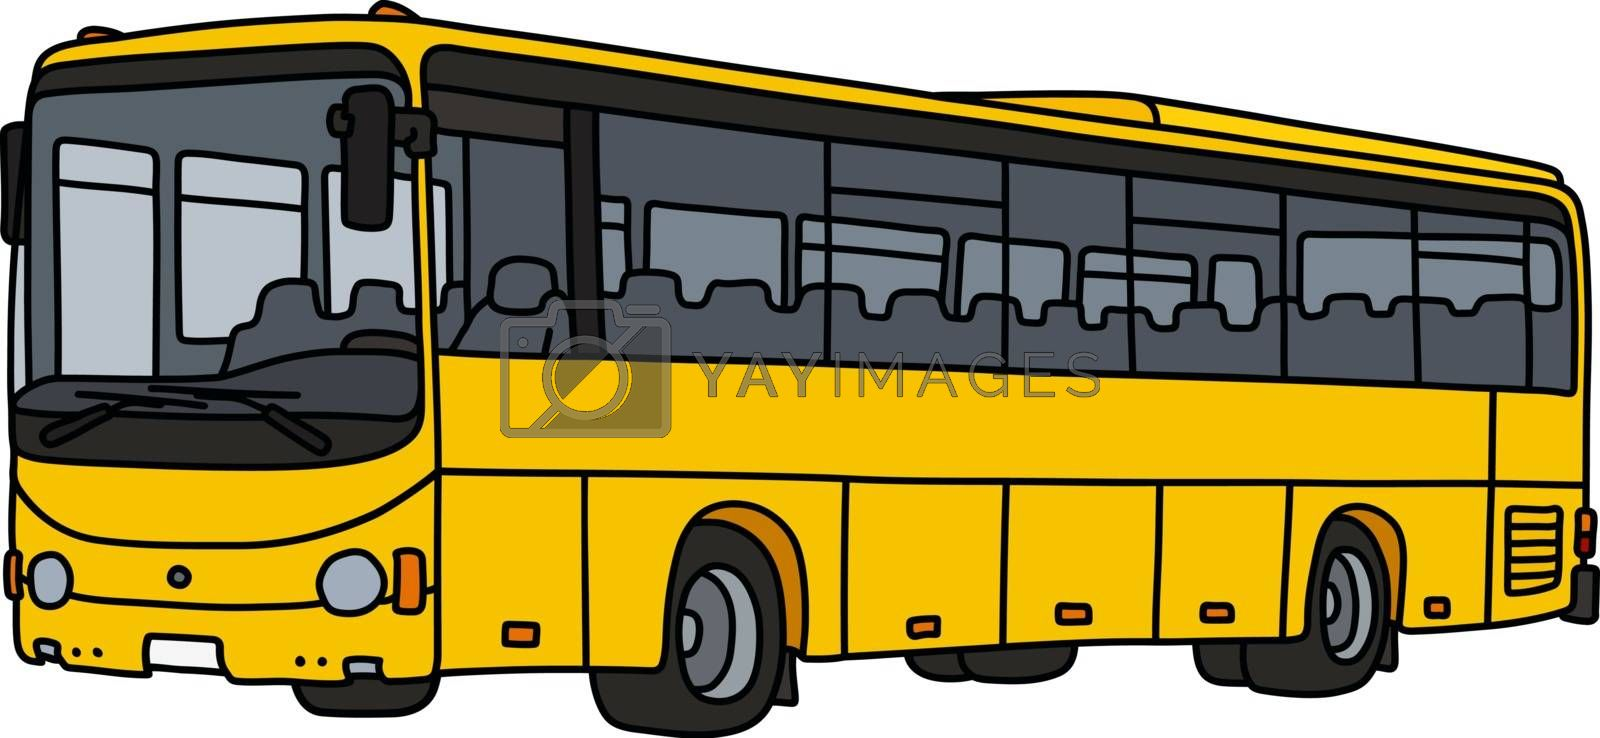 The vectorized hand drawing of a yellow touristic bus